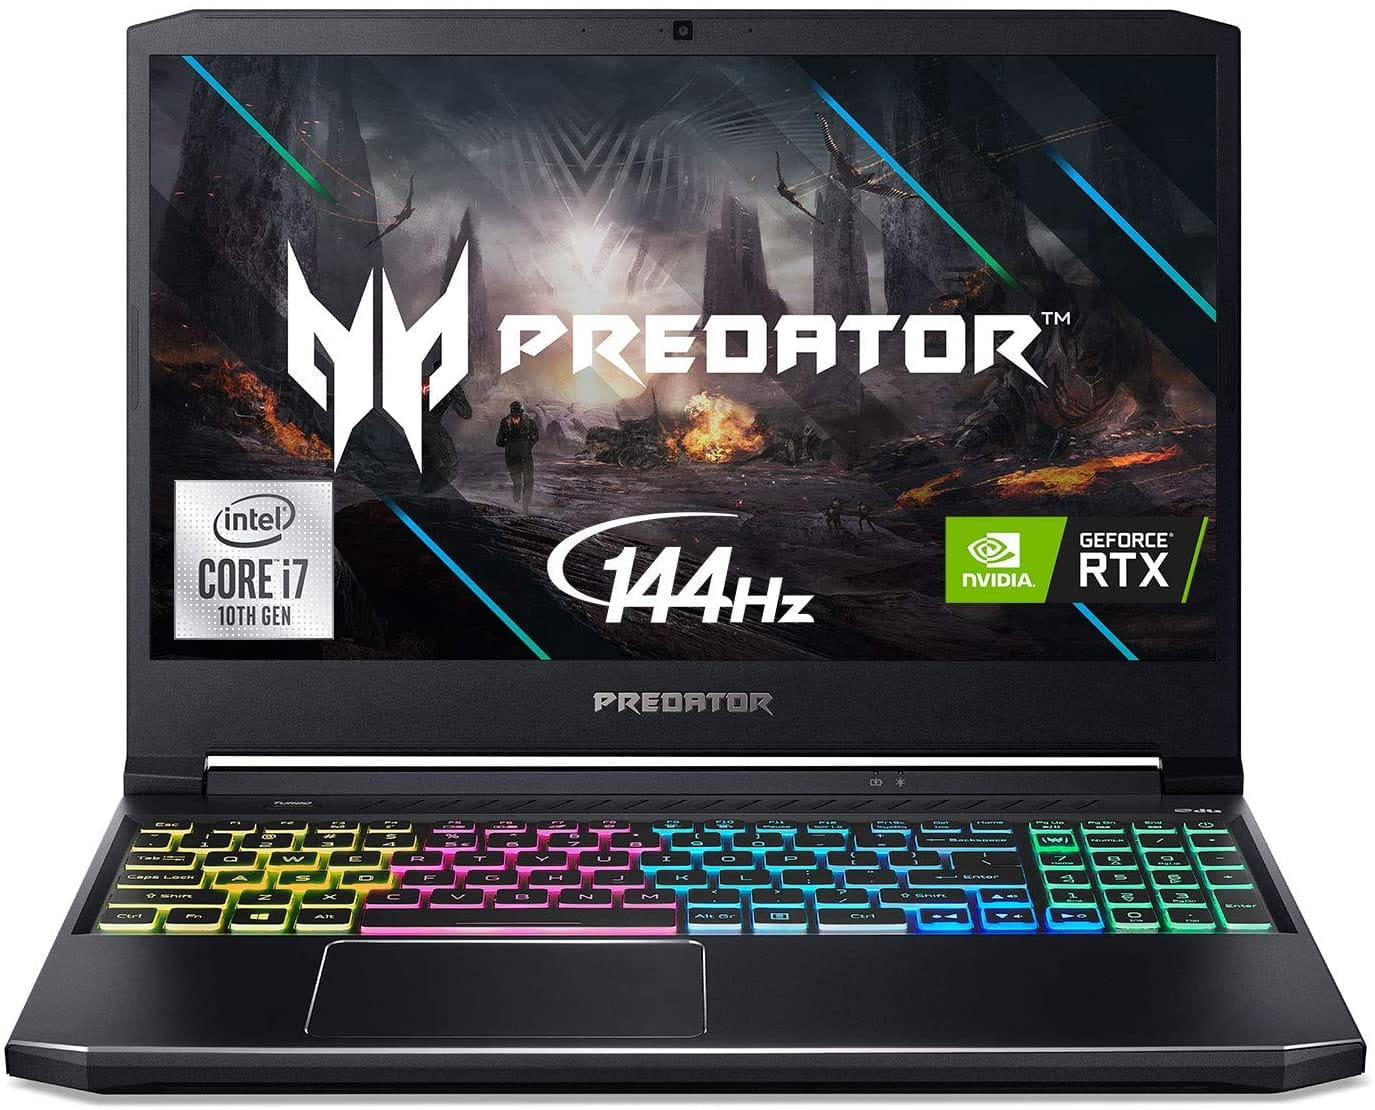 "Acer Predator Helios 300 Gaming Laptop, Intel i7-10750H, NVIDIA GeForce RTX 2060 6GB, 15.6"" Full HD 144Hz 3ms IPS Display, 16GB Dual-Channel DDR4 $1199 and tax free for some states"